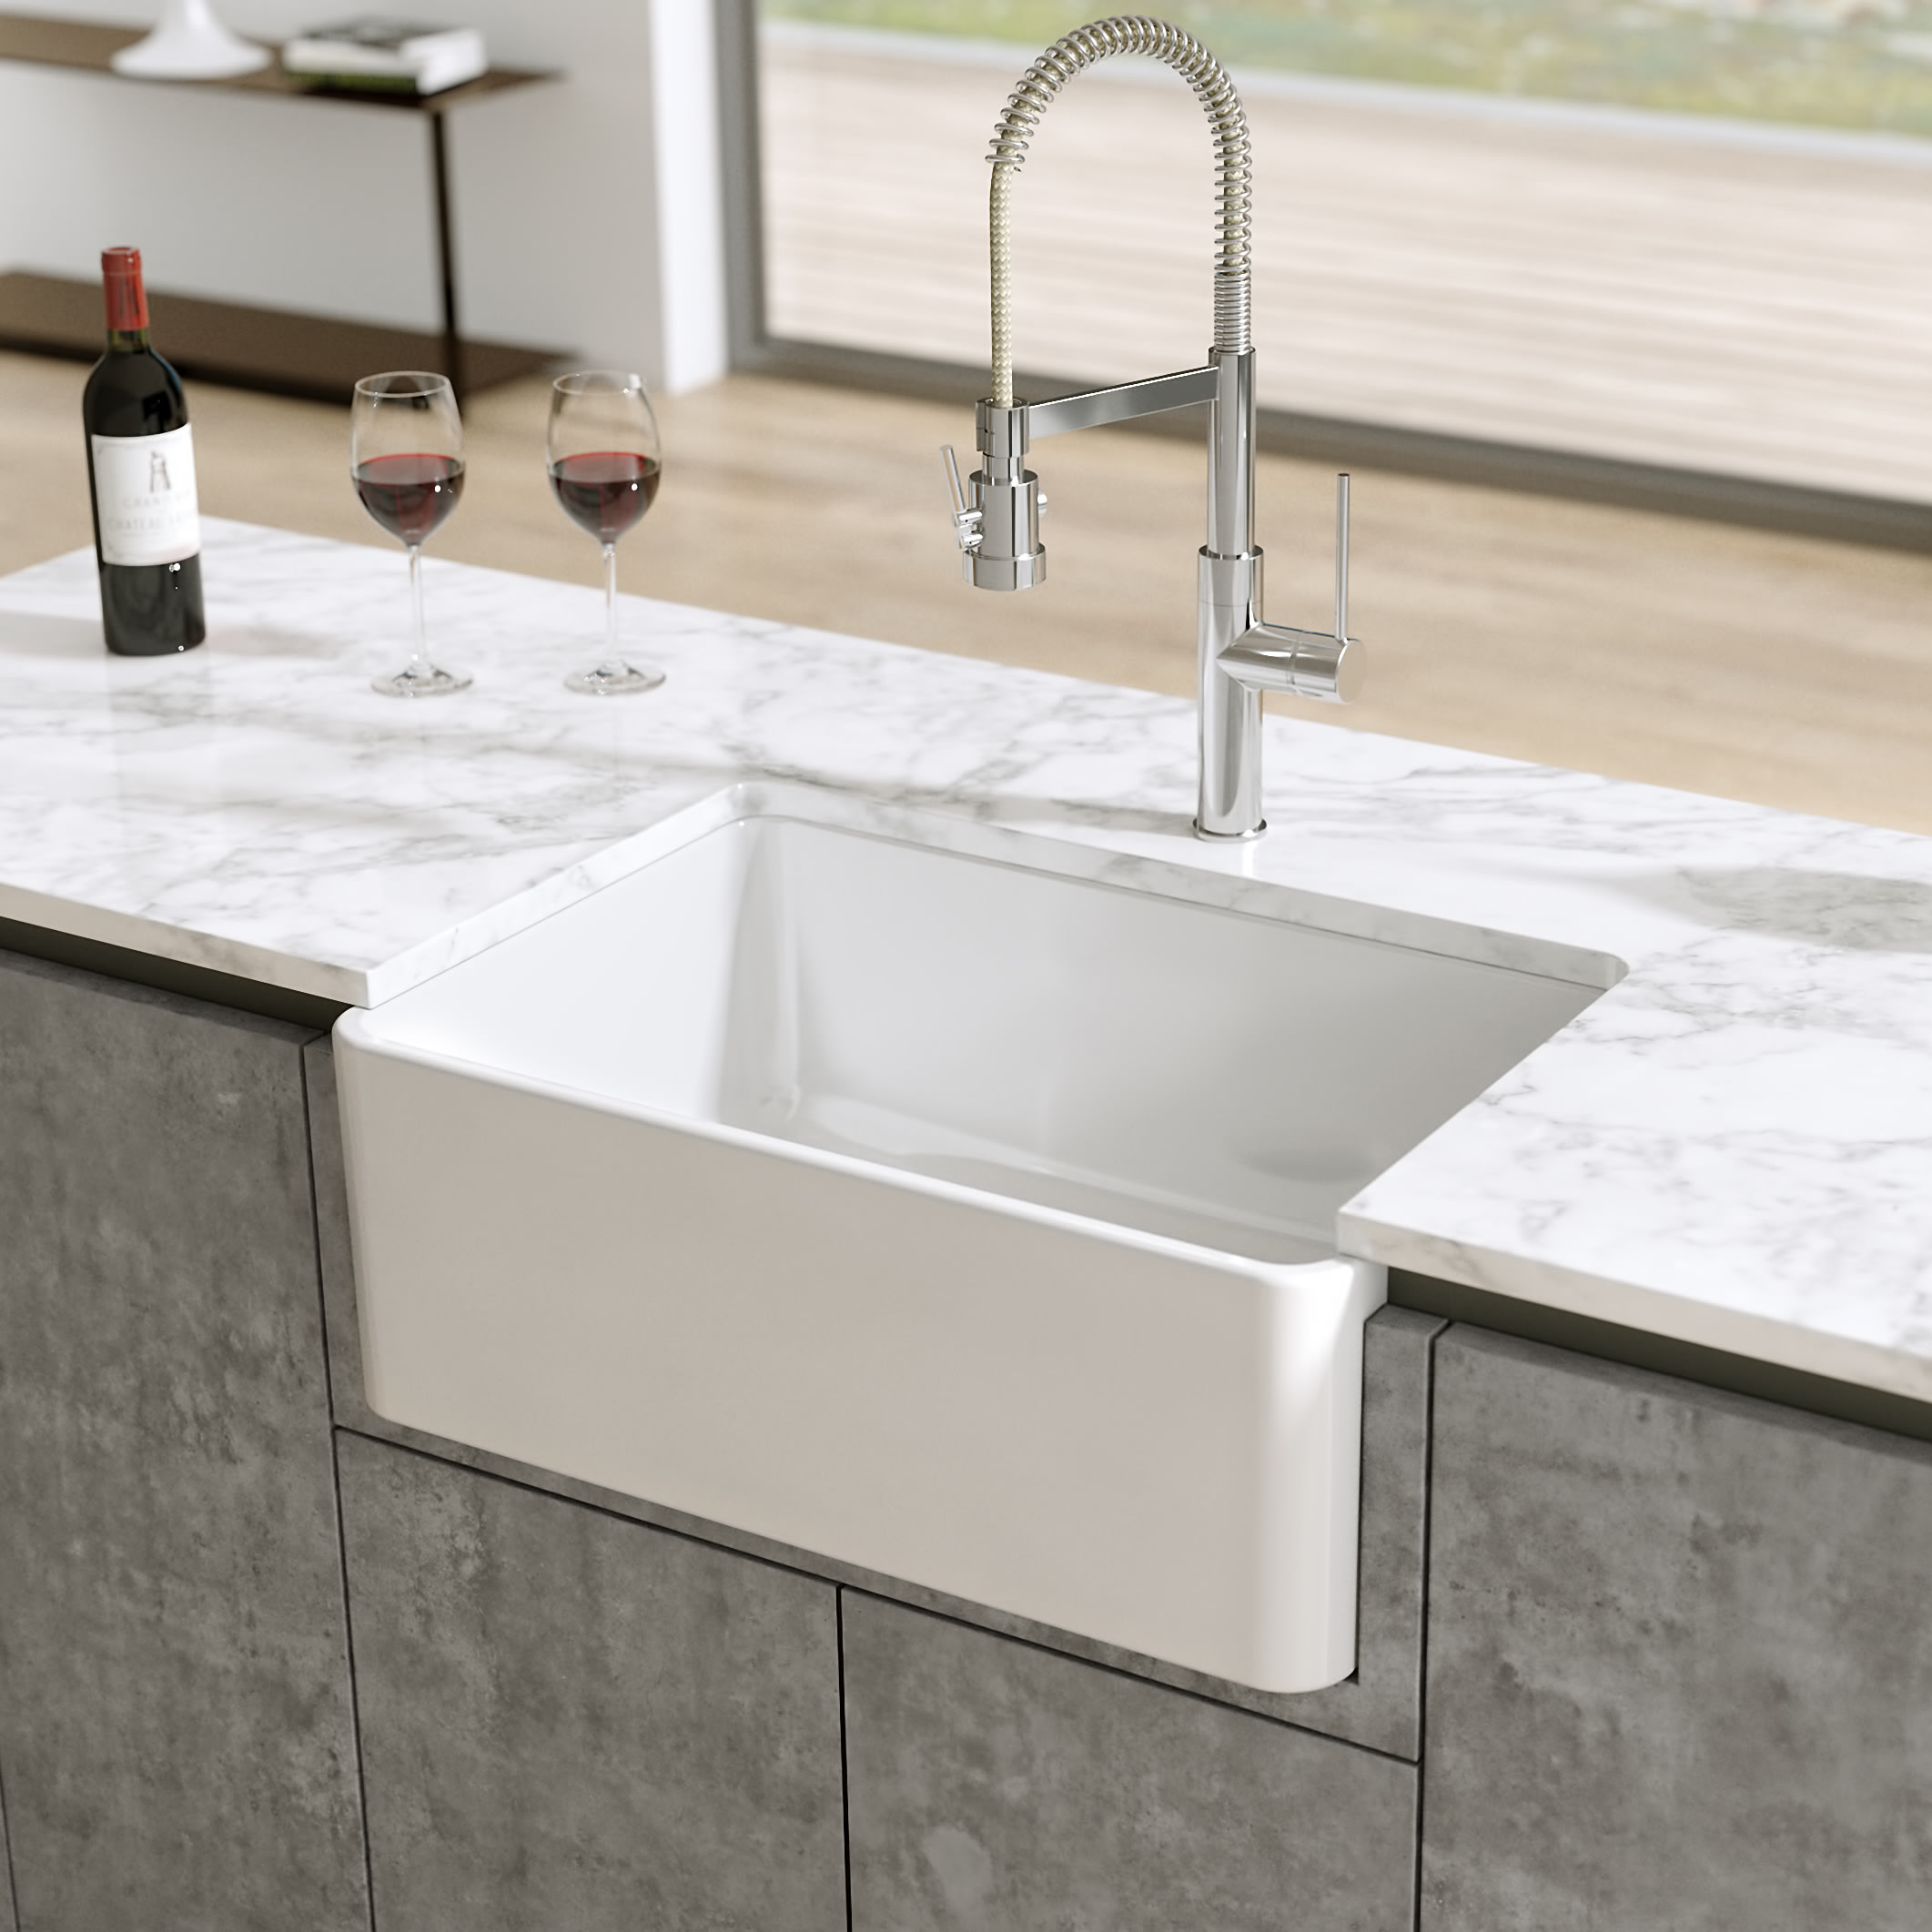 amazing marble countertop sink design and modern faucet.htm latoscana ltw2718w 27  reversible fireclay farmhouse sink  reversible fireclay farmhouse sink